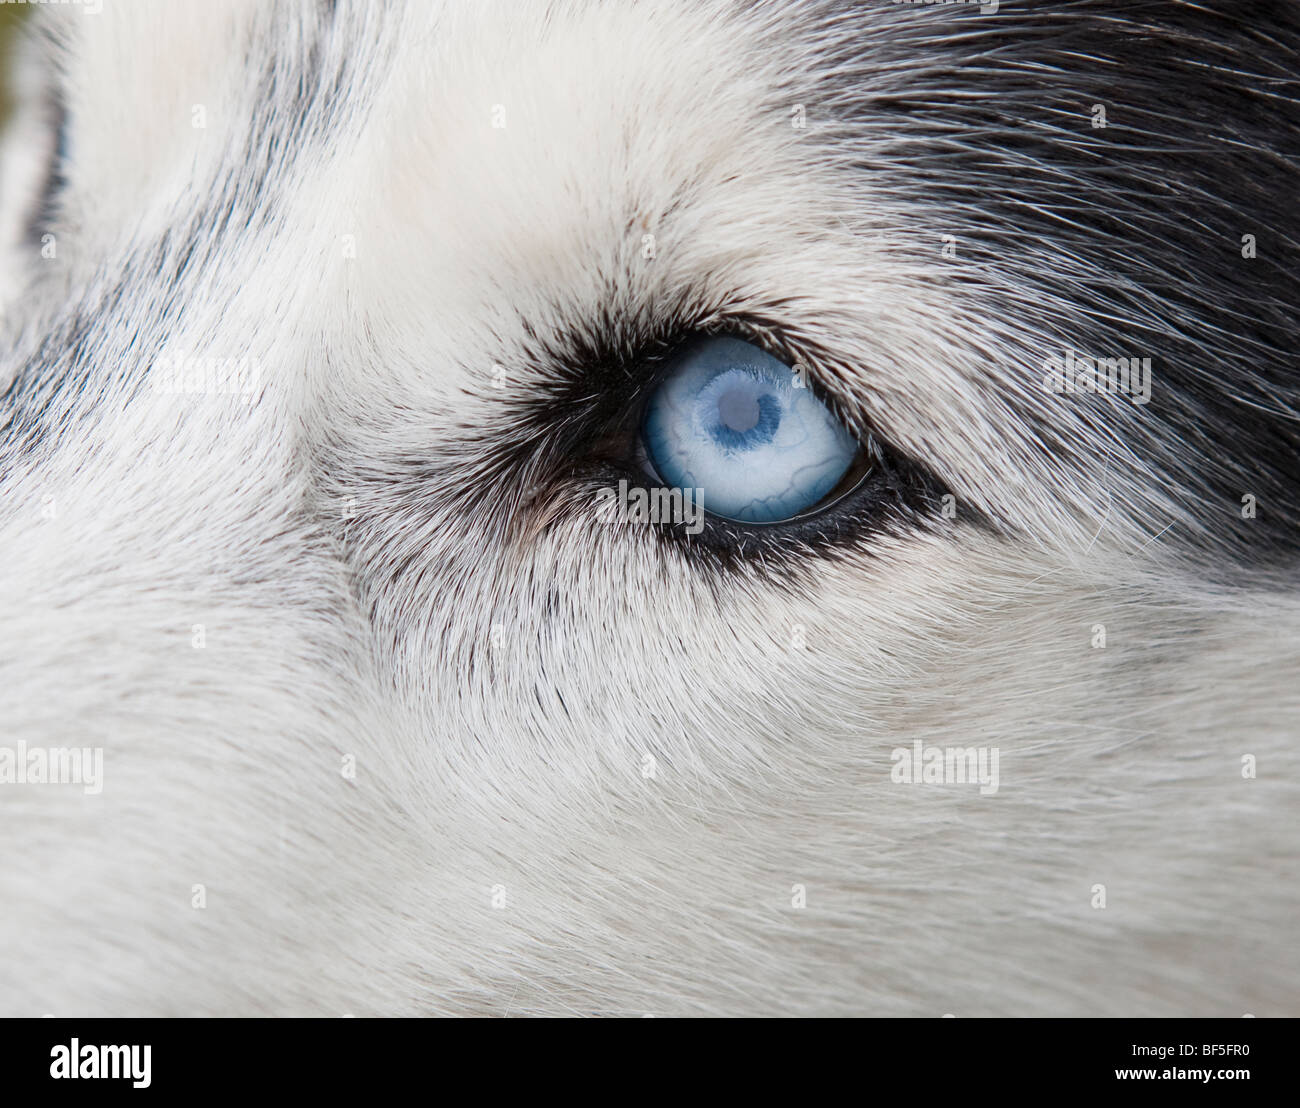 Siberian Husky, Eastern Iceland Stock Photo